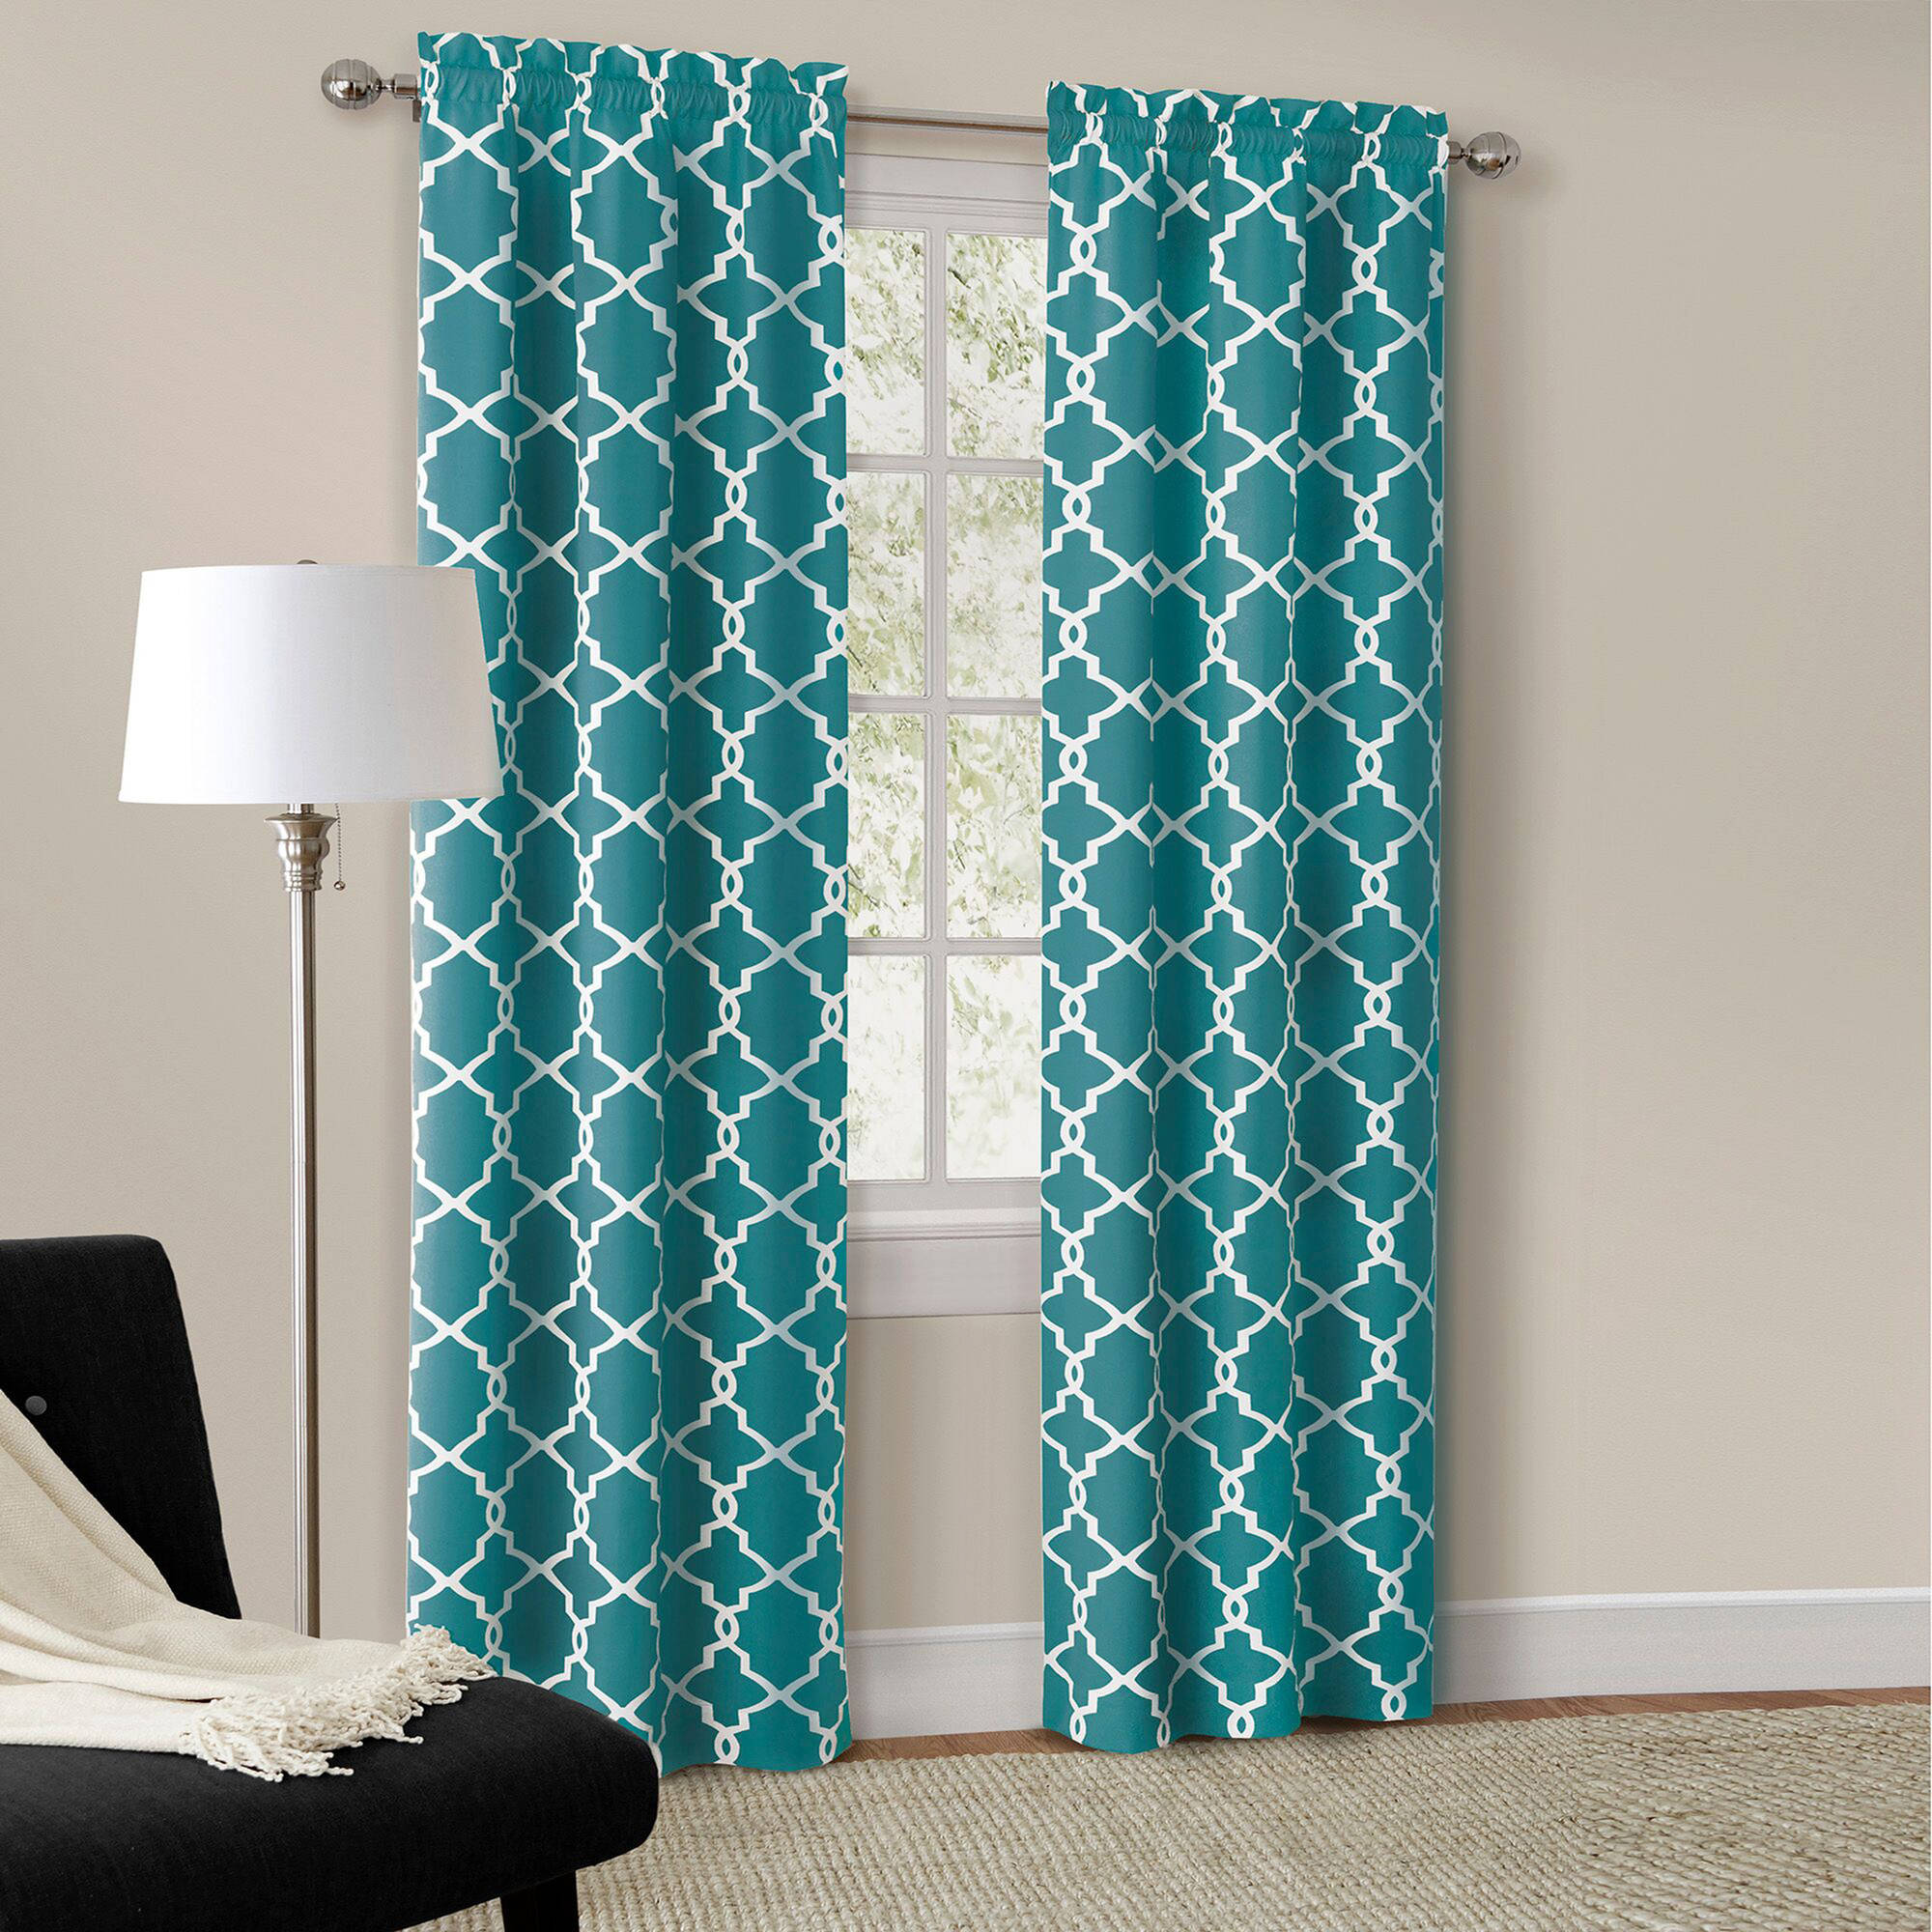 size soothing curtain full teal concept blackout decor curtains striped room fascinating sxs online white of inches home blue literarywondrous and amazing for brown bedroom navy curtainsng grey long royal black tan light ideas in style silver pic amazon living photo oklahomavstcuus